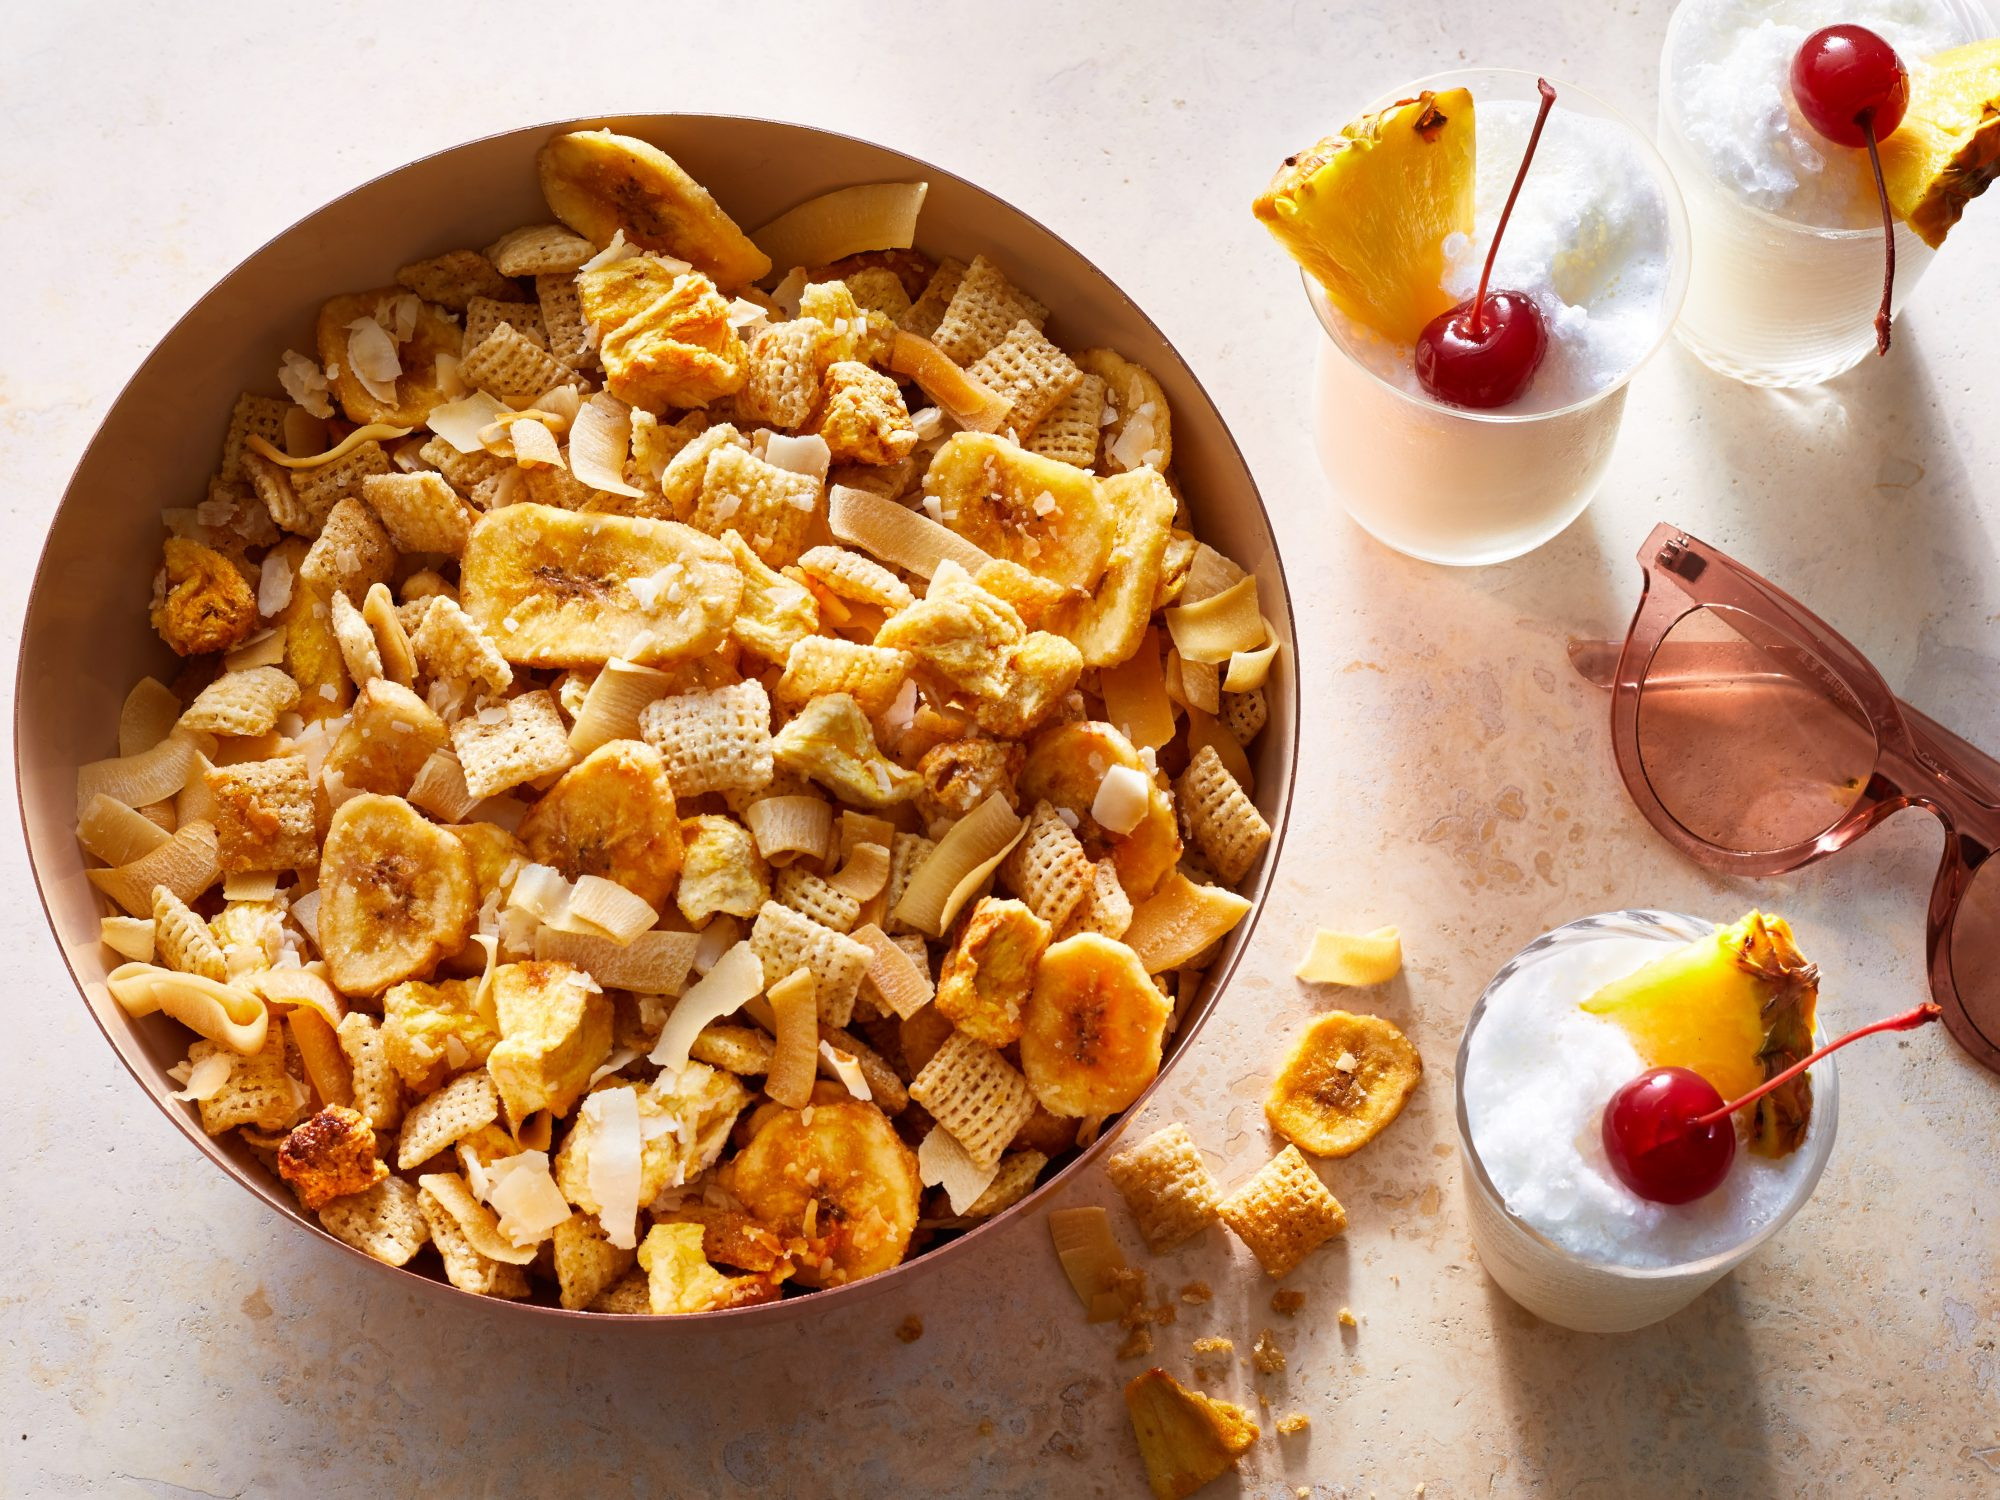 Piña Colada Snack Mix